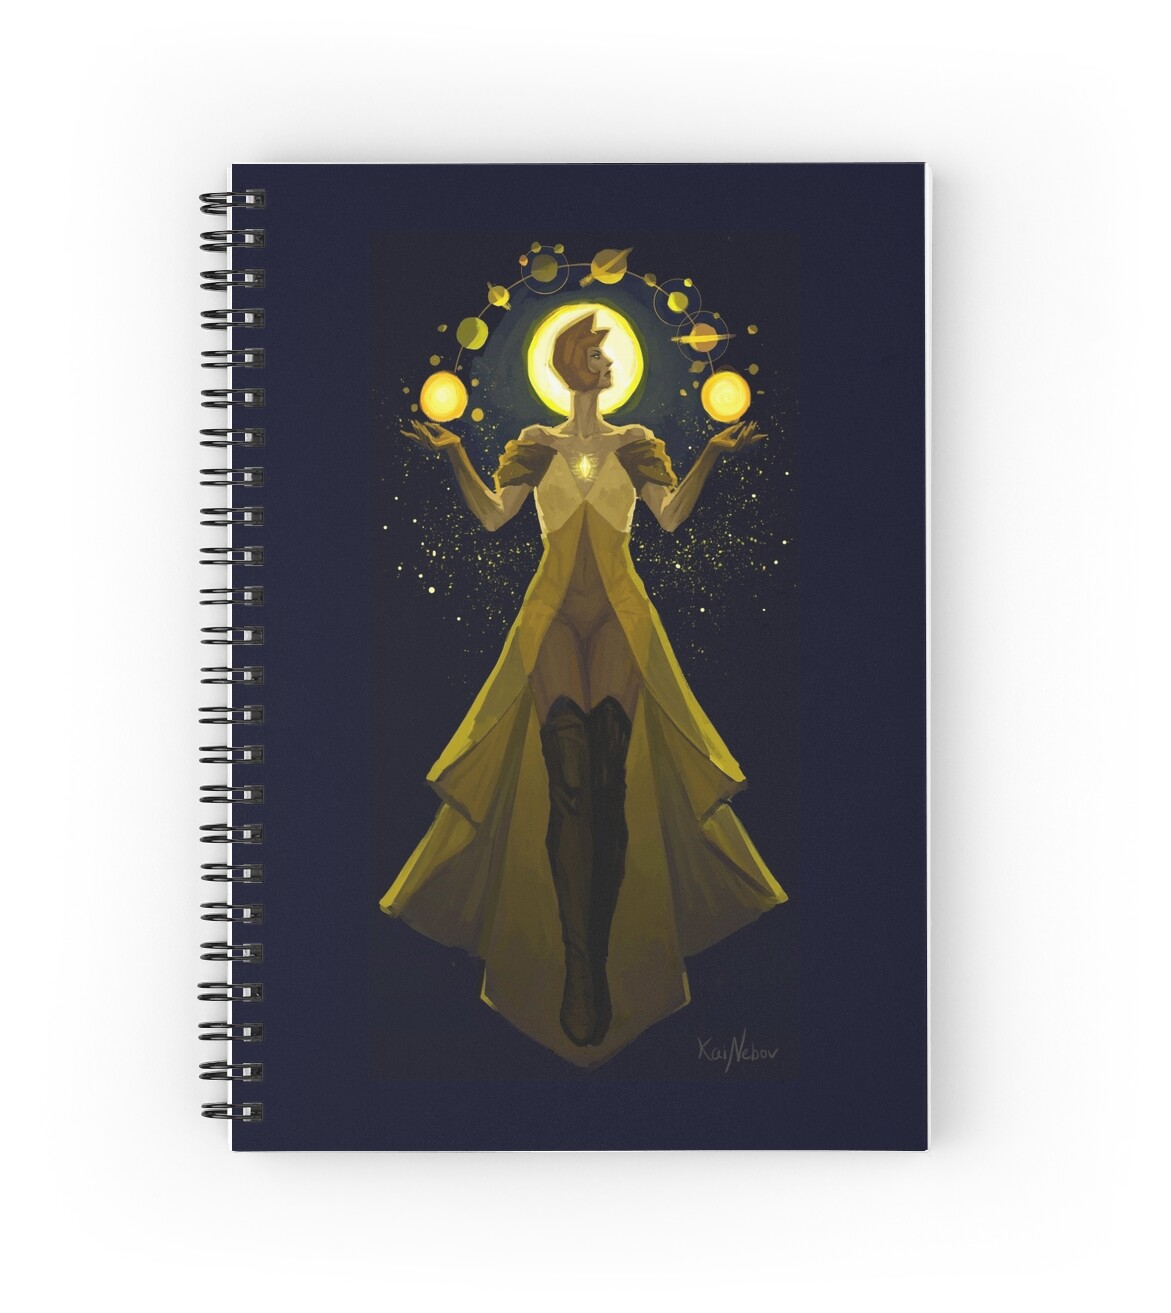 Yellow diamond mural spiral notebooks by kainebov for Yellow diamond mural